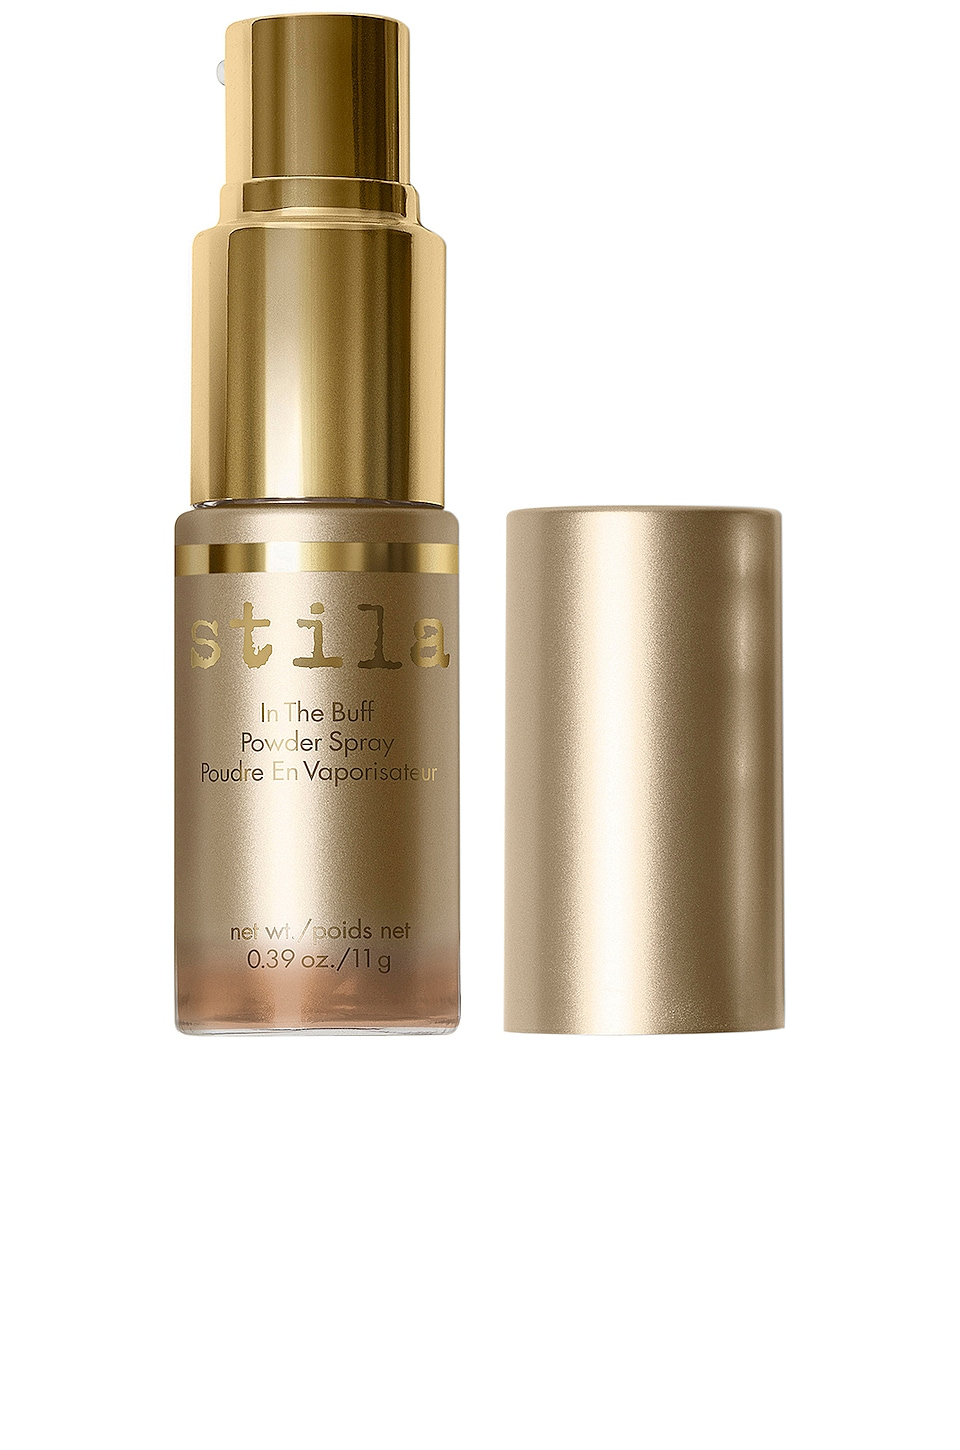 Stila SPRAY DE POLVO IN THE BUFF POWDER SPRAY